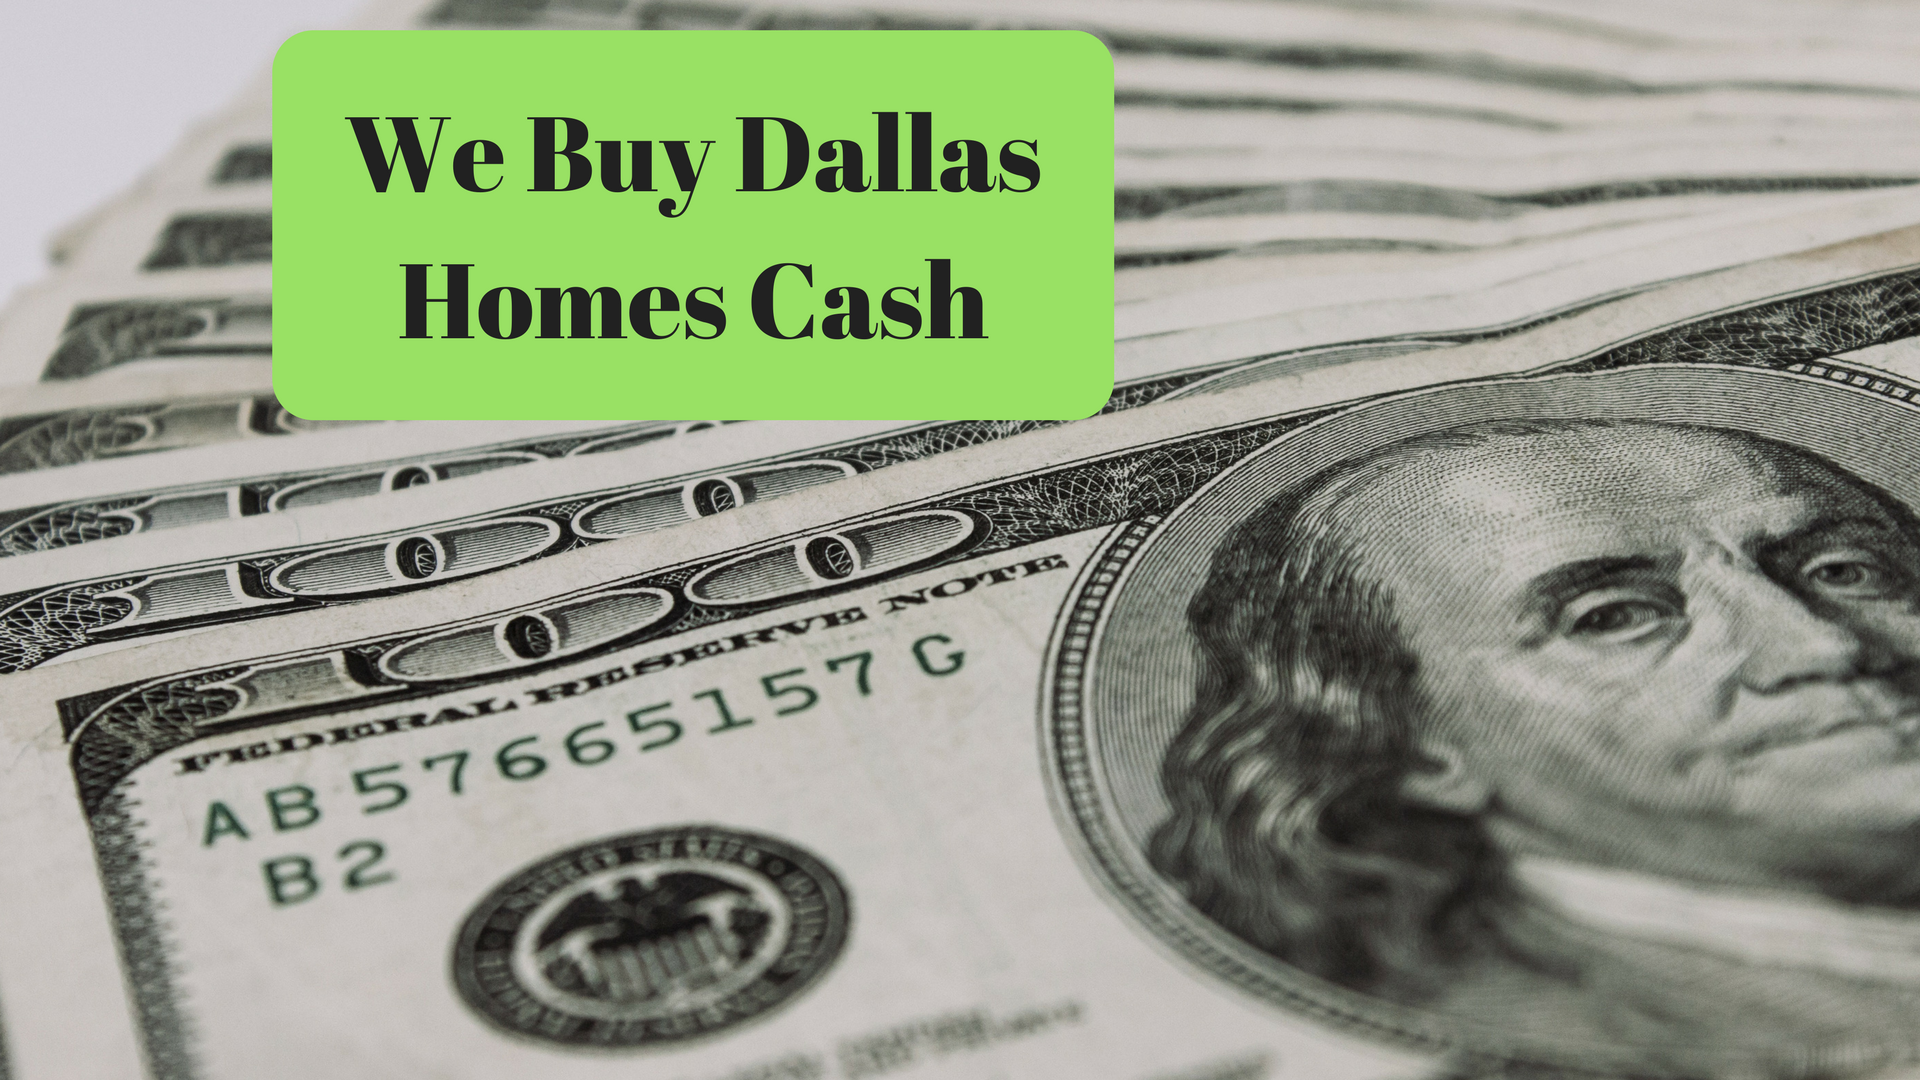 We Buy Dallas Homes Cash - Best Way to Sell Your Dallas House